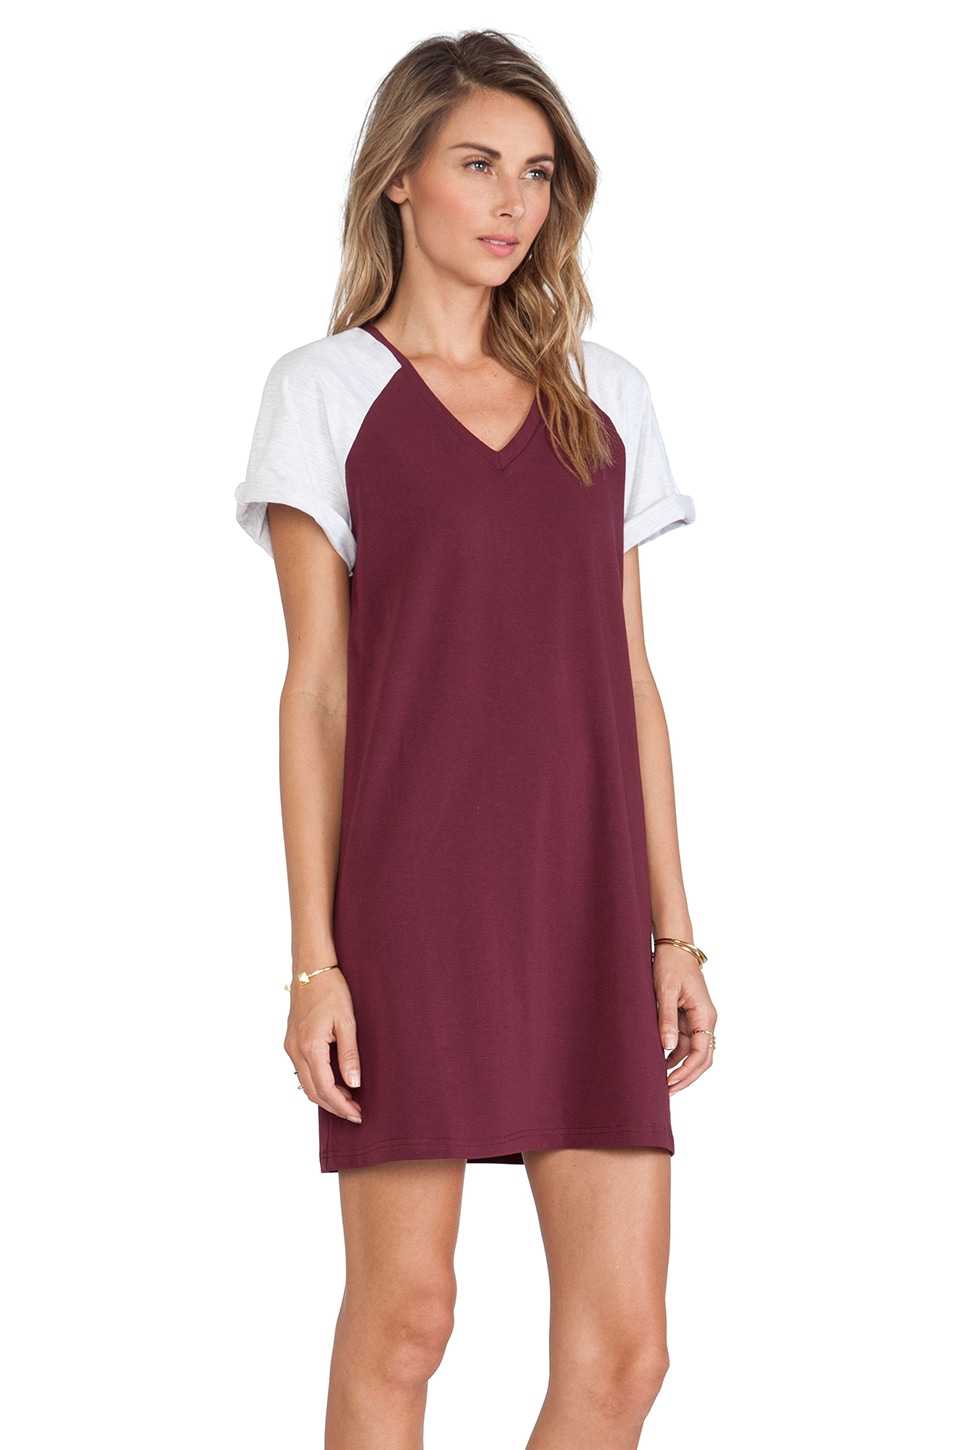 shirt Dress in Maroon